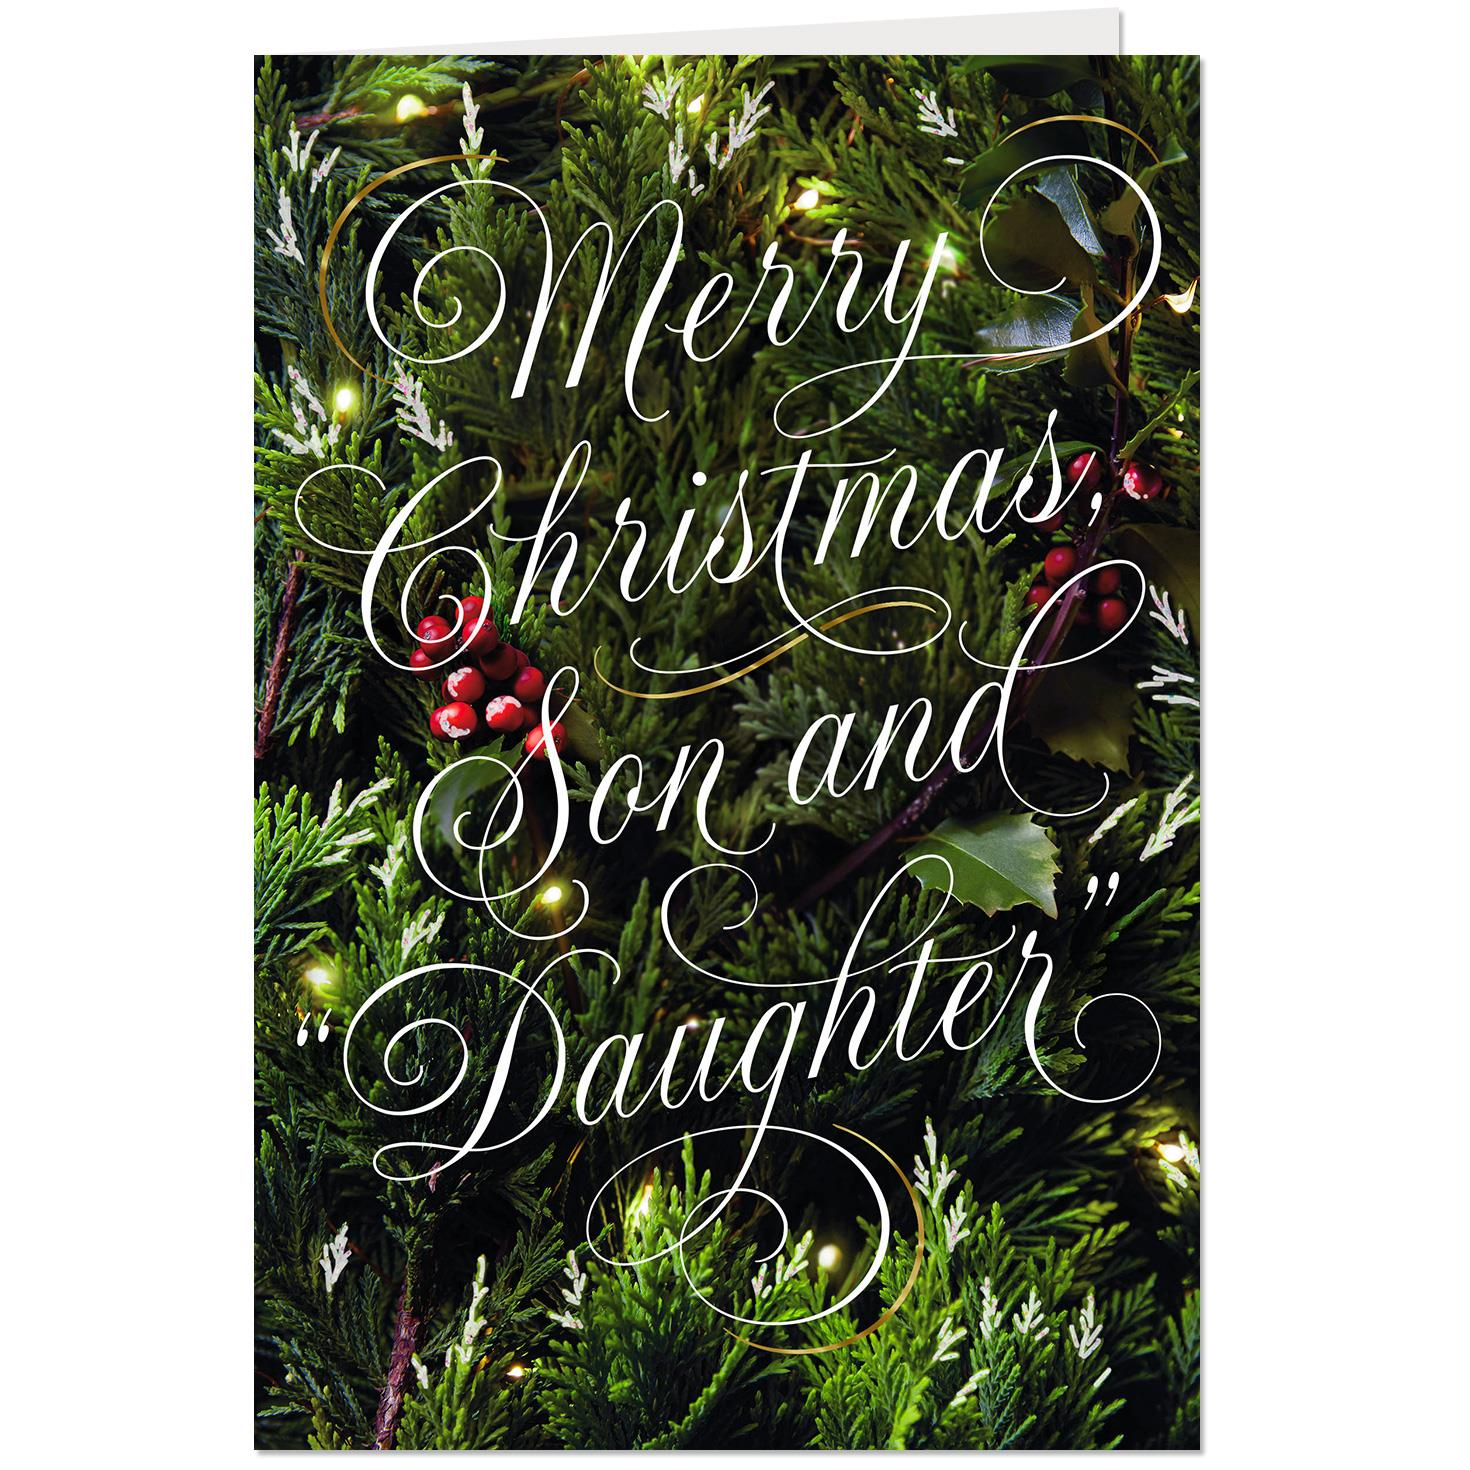 Wonderful Time Of Year Christmas Card For Son And Daughter